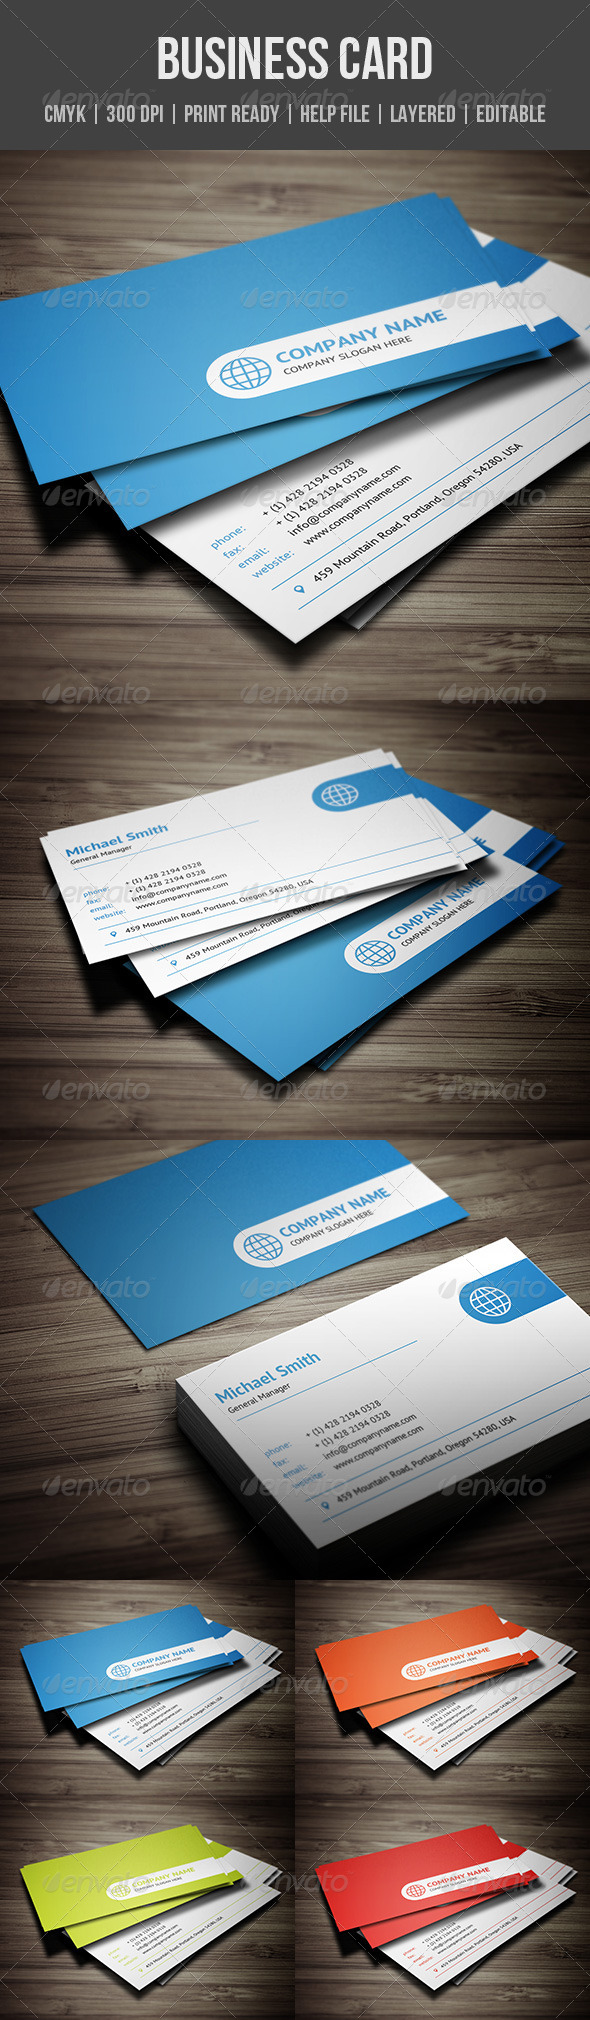 Clean corporate business card corporate business business cards clean corporate business card corporate business cards reheart Images